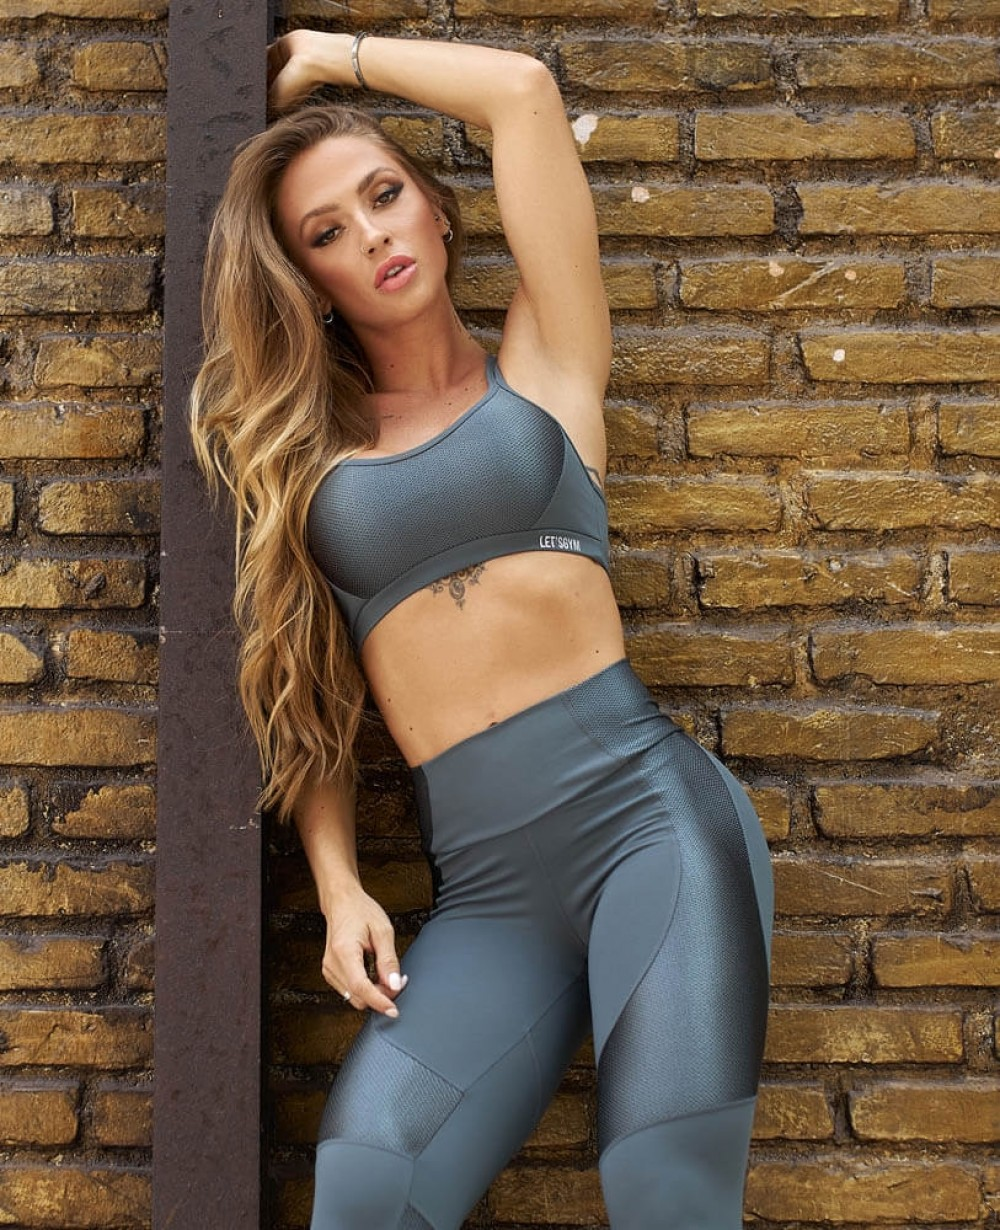 Top Let'sGym Gorgeous